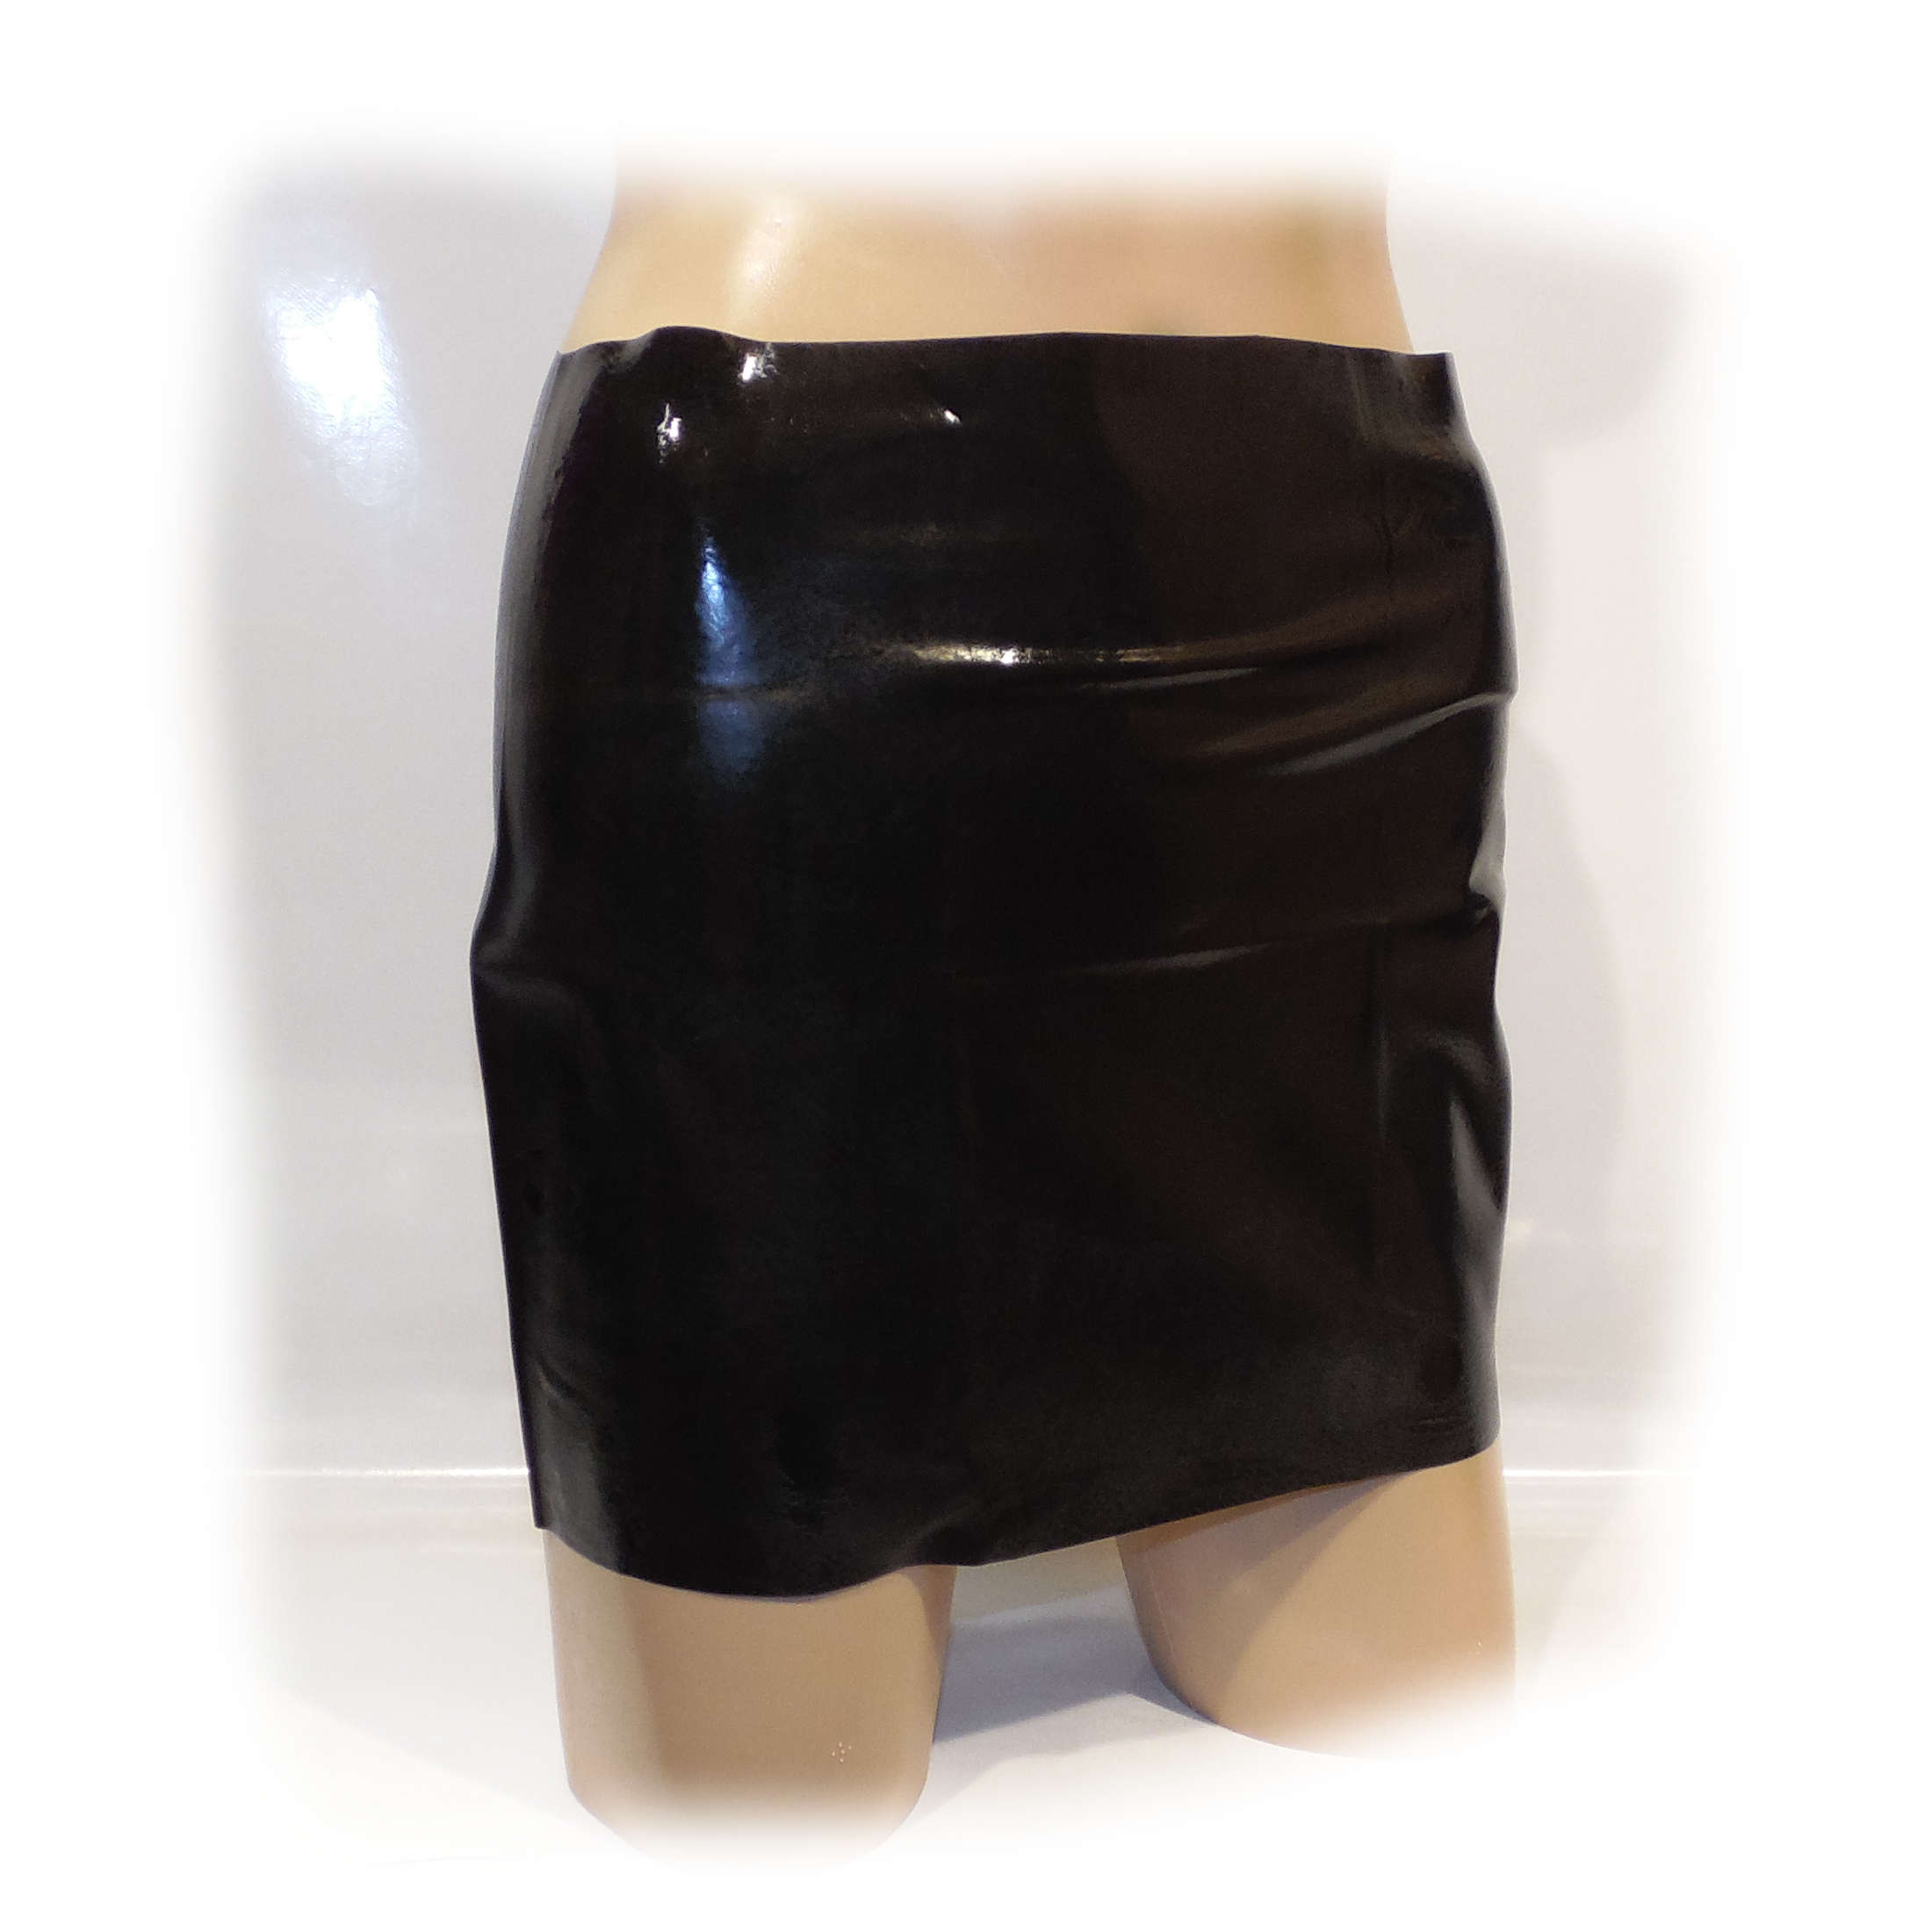 Latex Female Skirt with hole Schwarz extra heiß - 0,3 m Size L (2176) 3